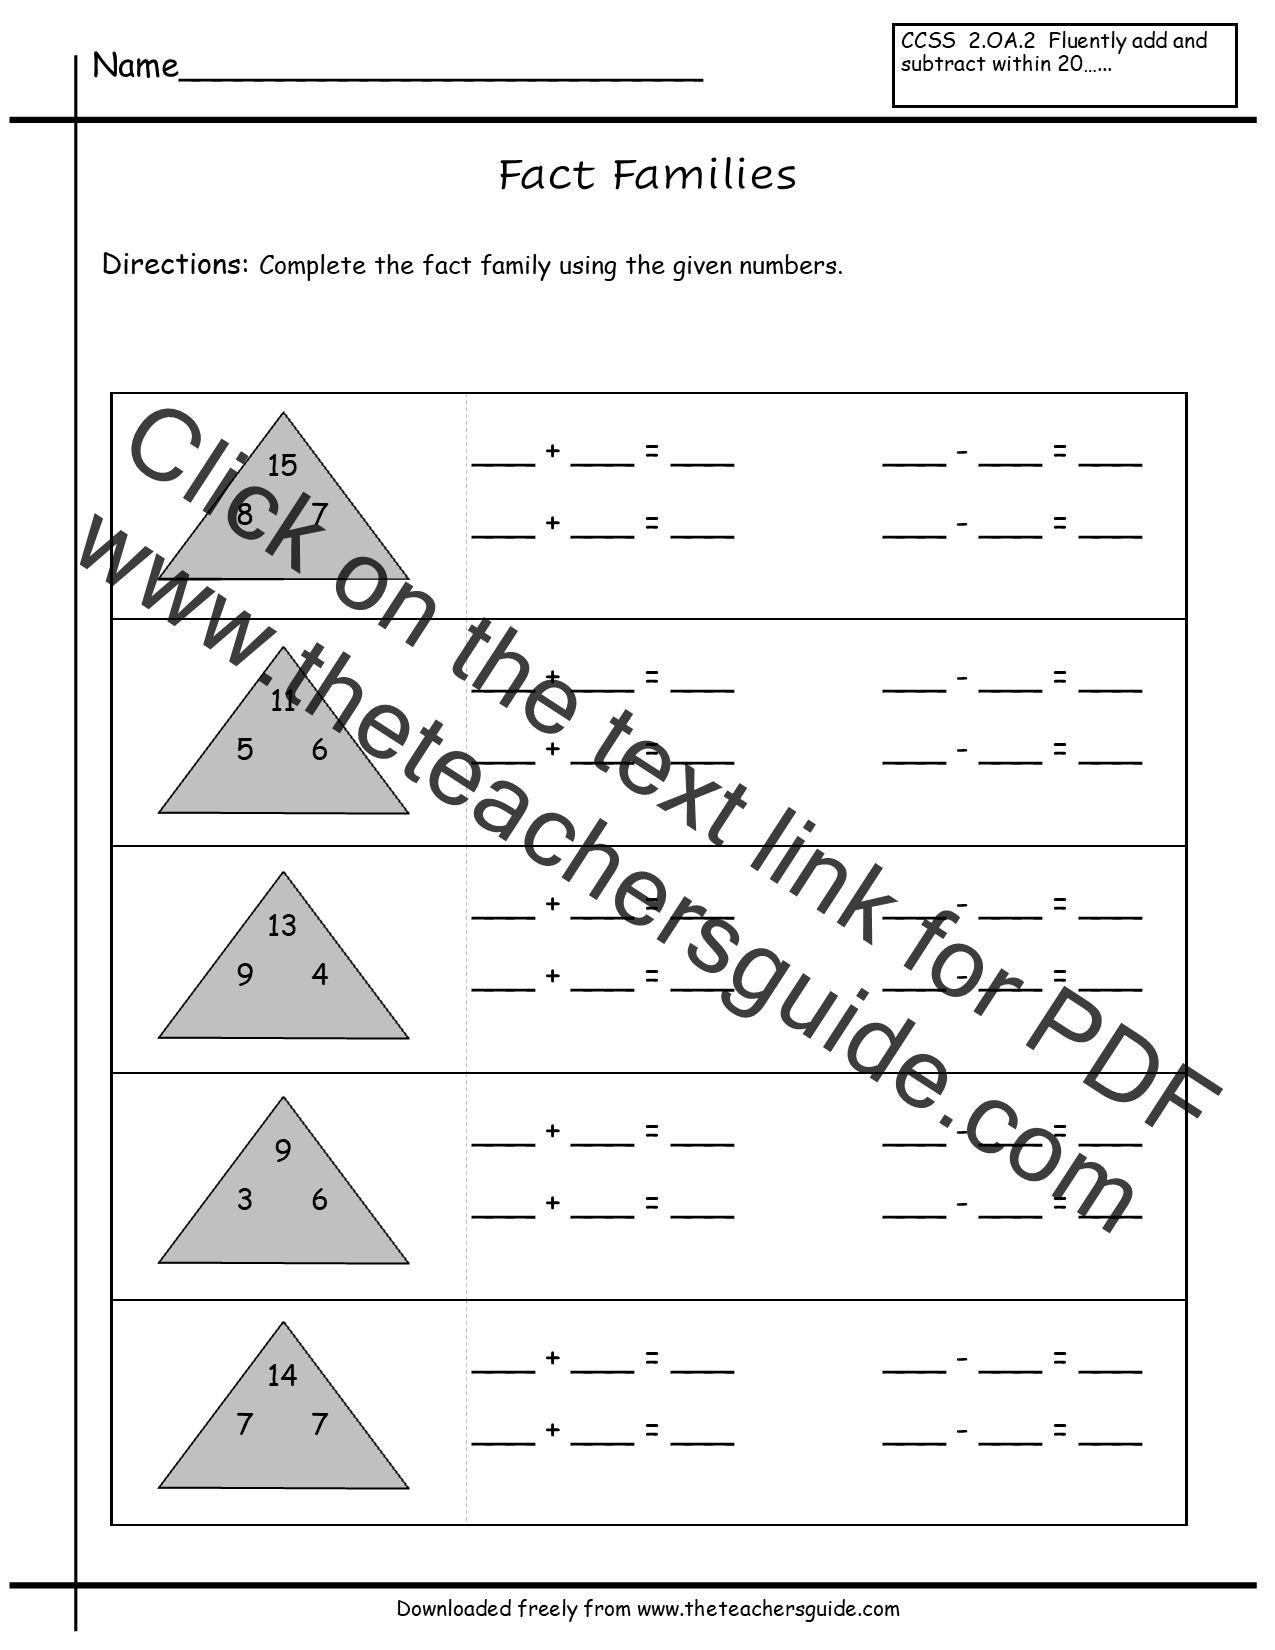 Worksheets Fact Family Worksheet comparing numbers worksheets from the teachers guide fact family worksheets